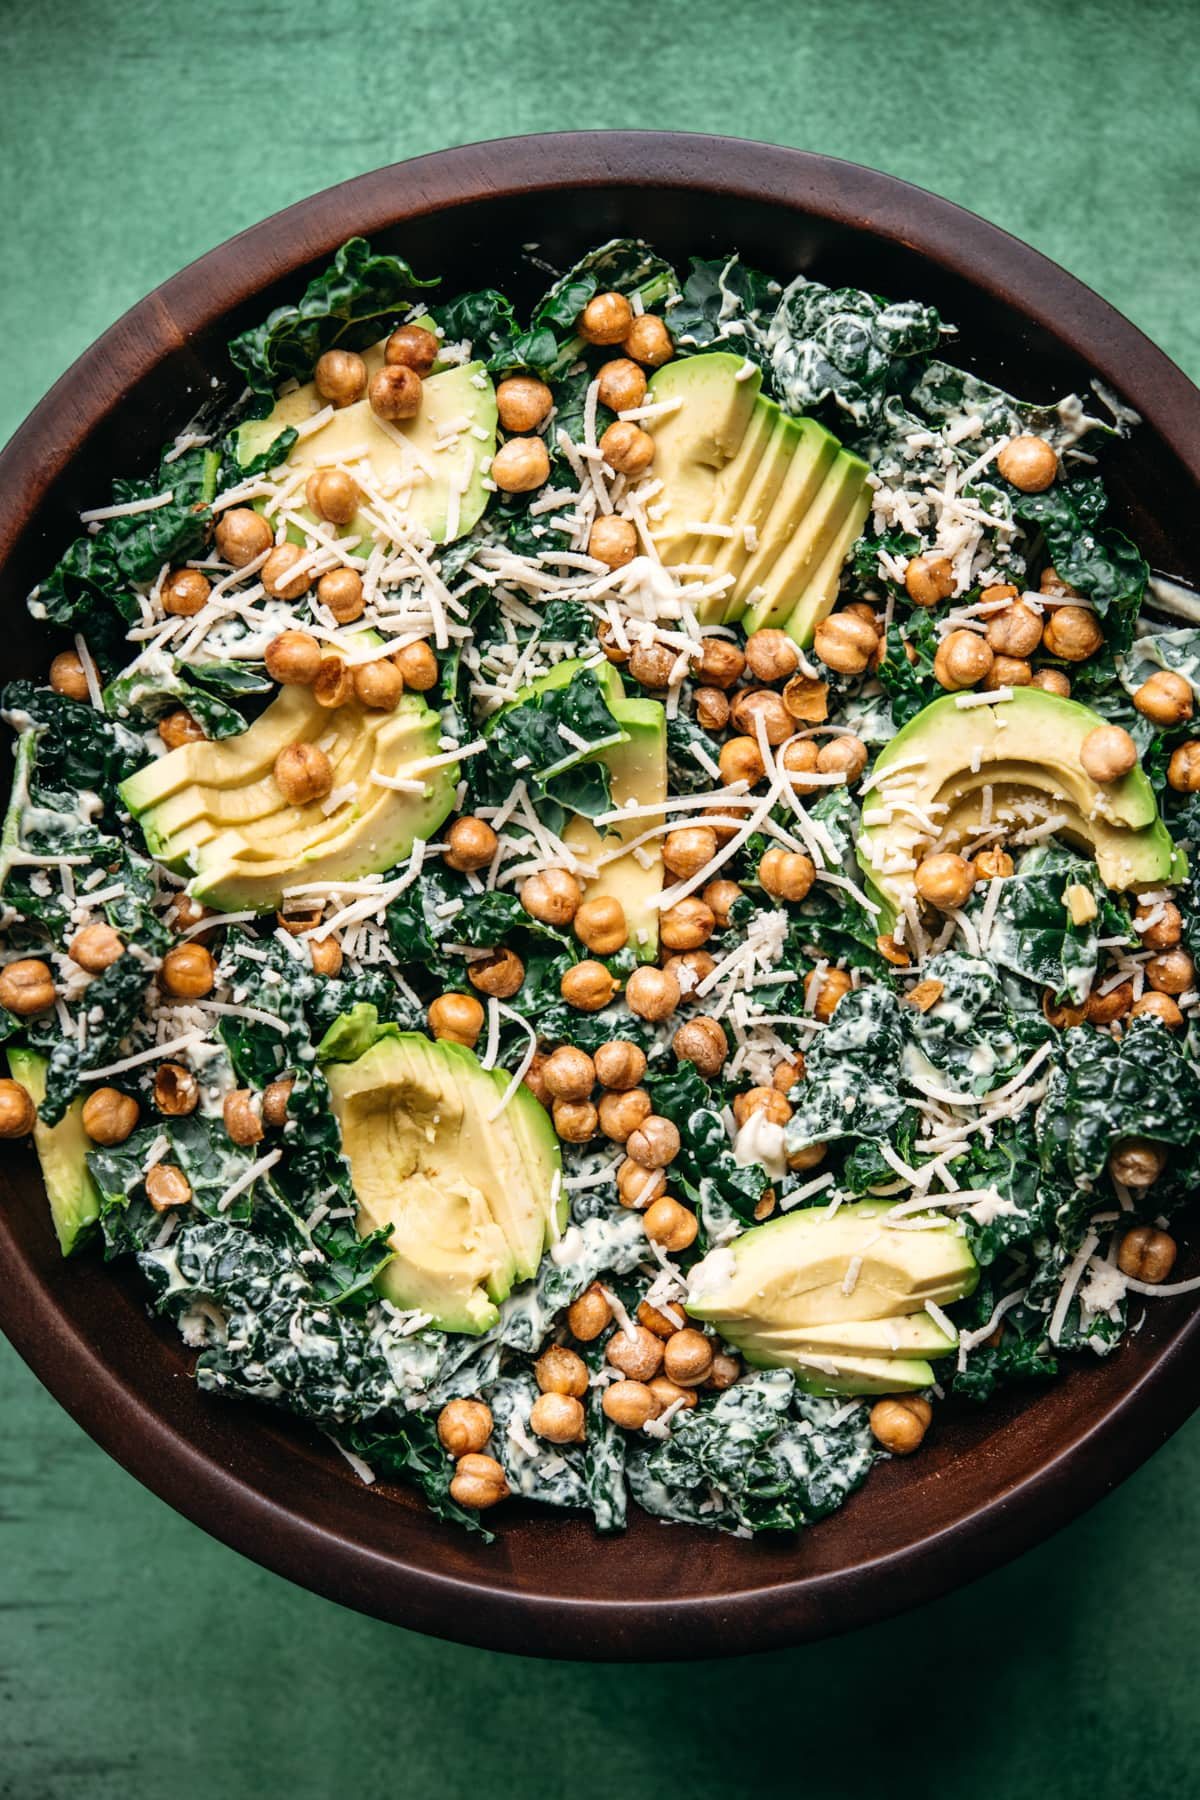 overhead view of vegan kale caesar salad in a large wood bowl topped with avocado and crispy chickpeas.